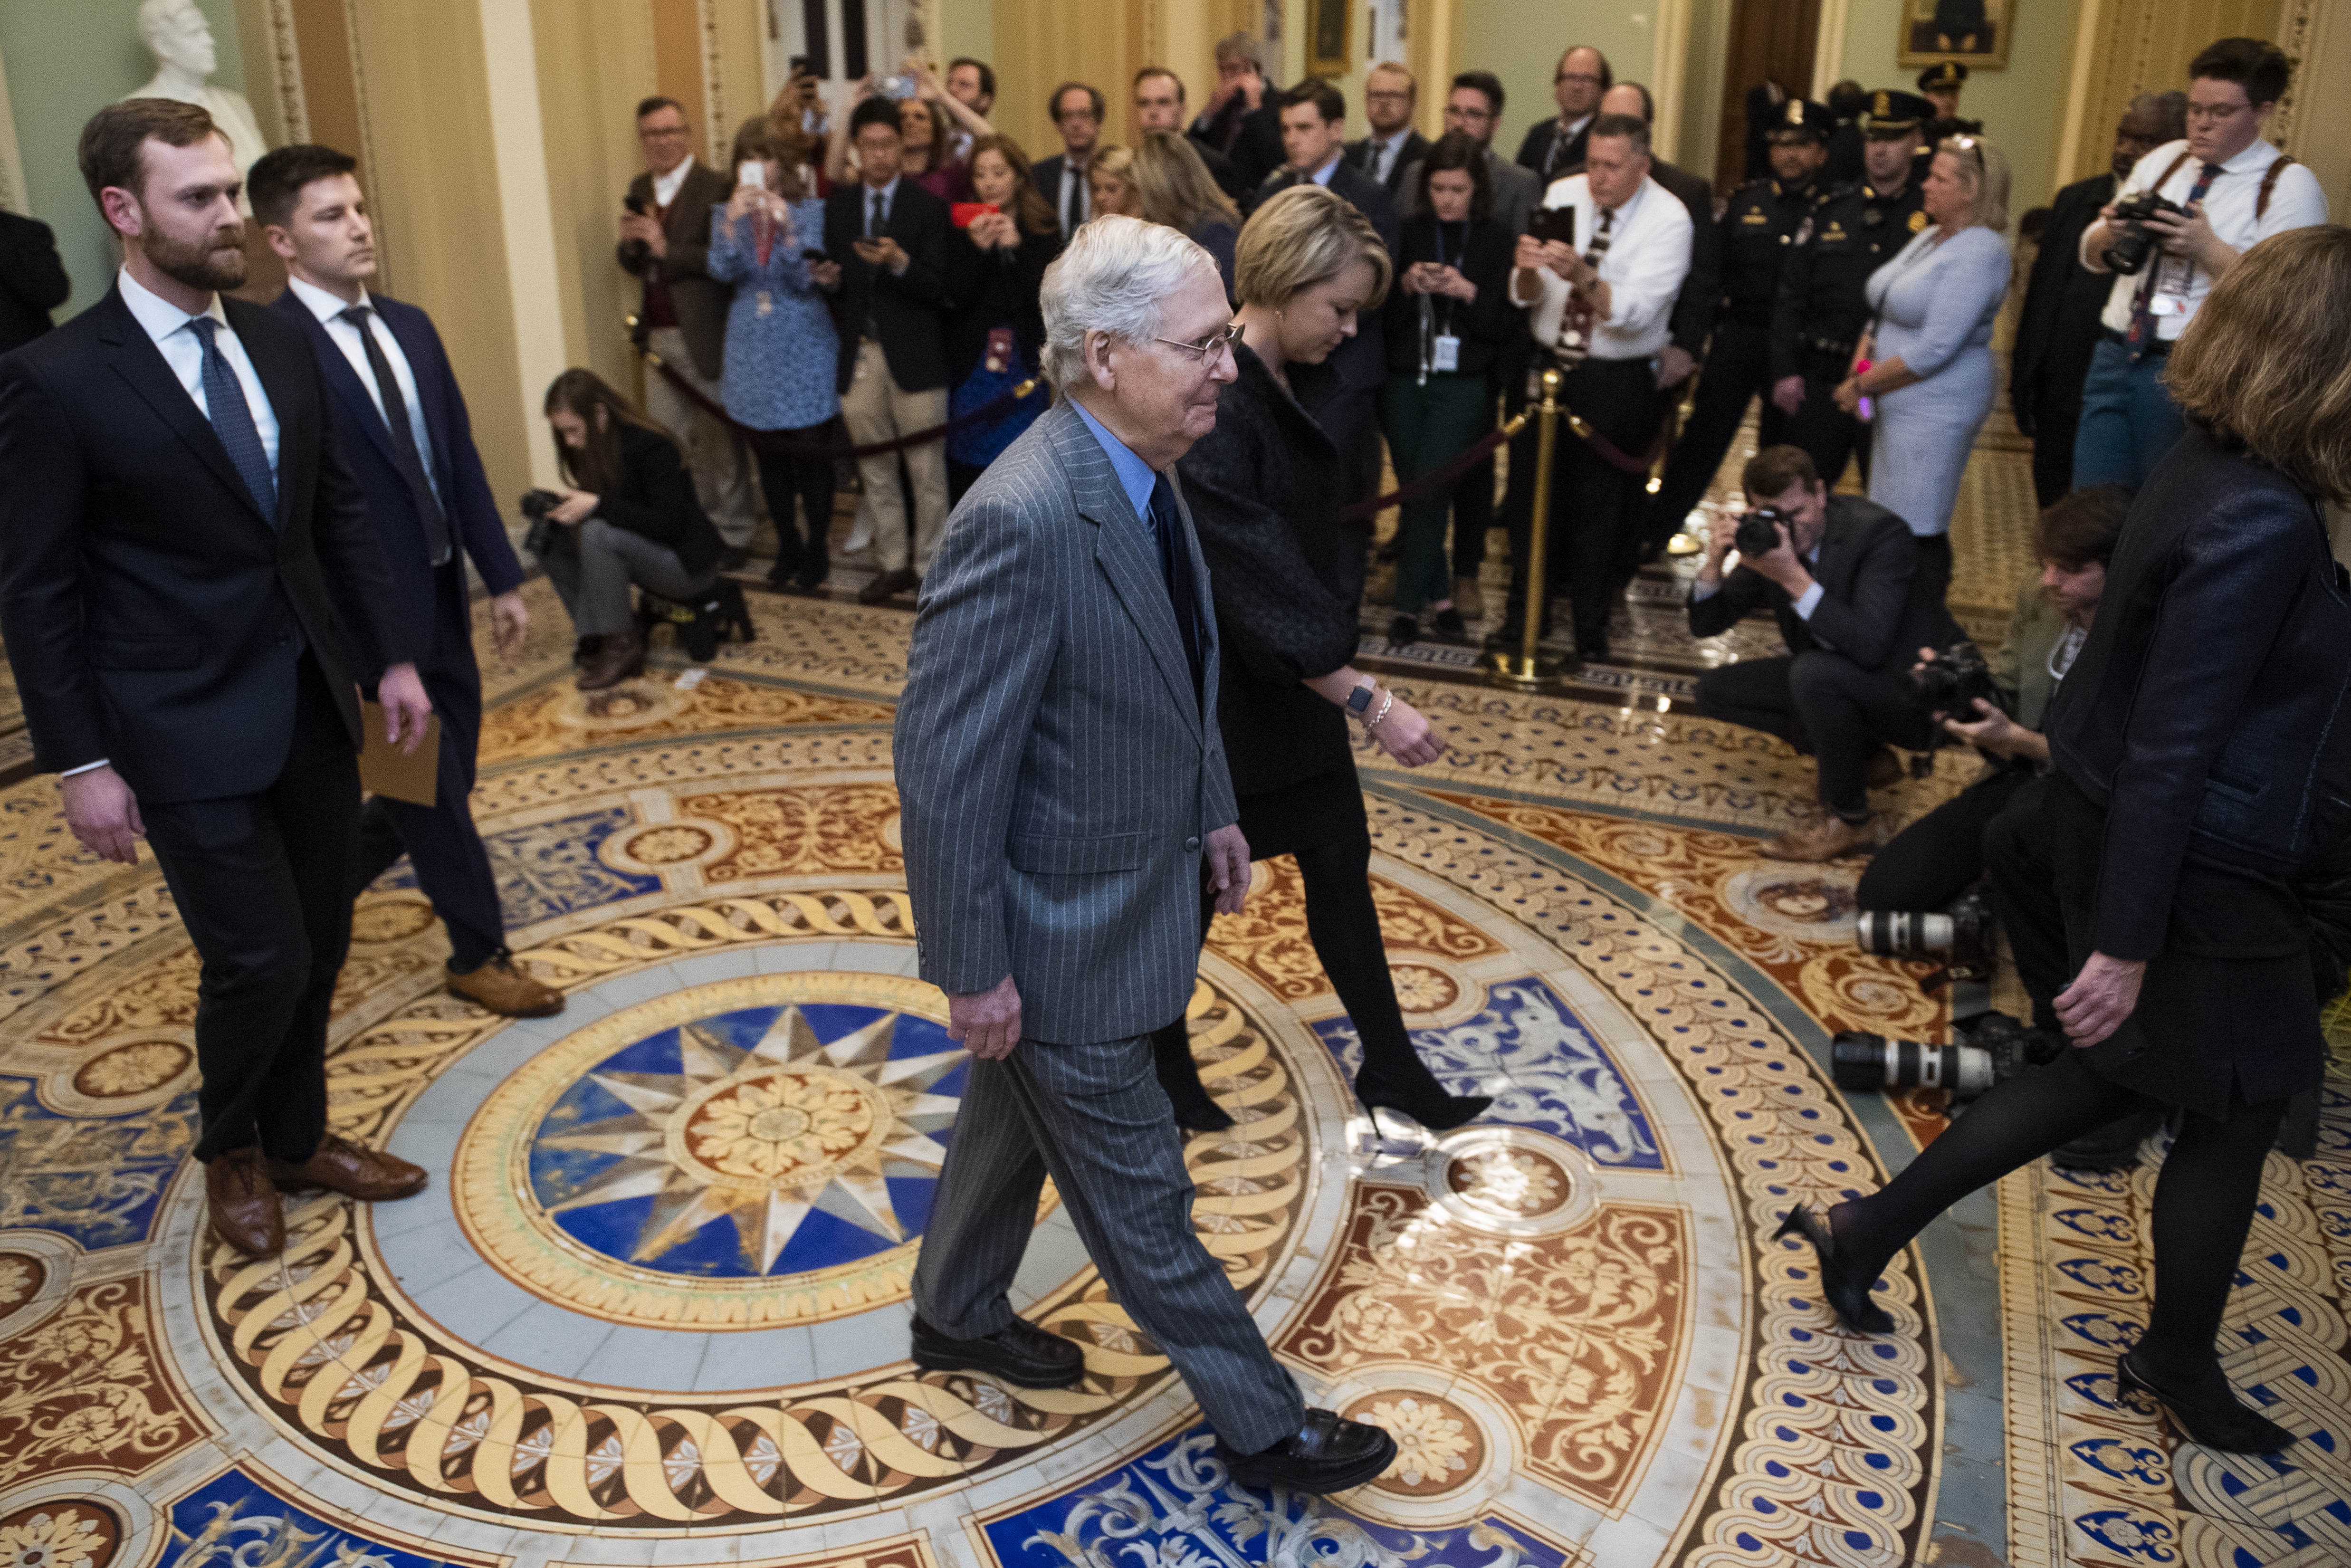 UNITED STATES - JANUARY 15: Senate Majority Leader Mitch McConnell, R-Ky., makes his way to the Senate floor before House impeachment managers Reps. Adam Schiff, D-Calif., Jerrold Nadler, D-N.Y., Zoe Lofgren, D-Calif., Hakeem Jeffries, D-N.Y., Jason Crow, D-Colo., Val Demings, D-Fla., and Sylvia Garcia, D-Texas, delivered articles of impeachment against President Donald Trump on Wednesday, January 15, 2020. (Photo By Tom Williams/CQ Roll Call)